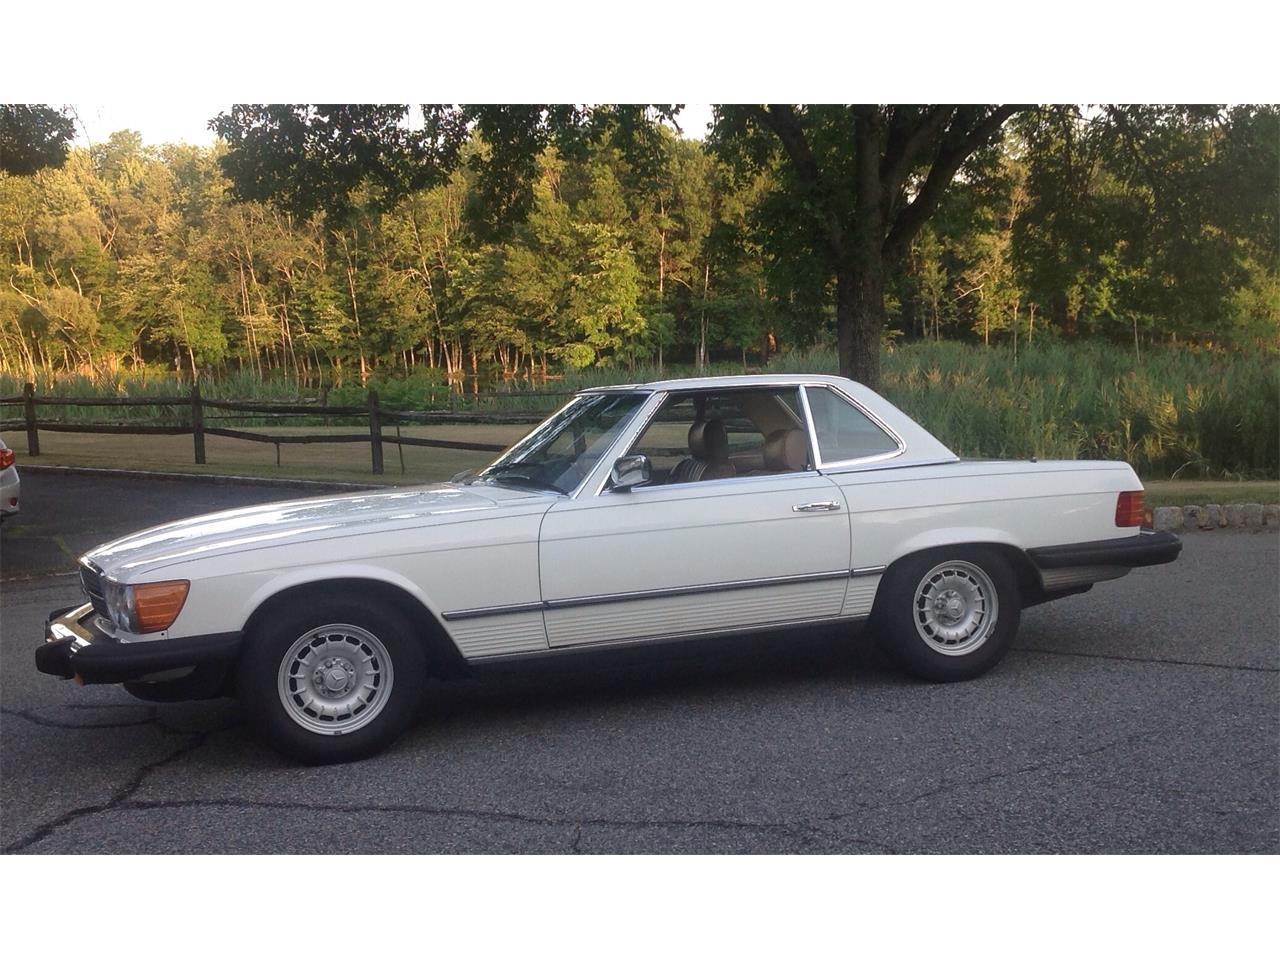 Large Picture of '84 Mercedes-Benz 380SL - $15,995.00 Offered by a Private Seller - F4UW